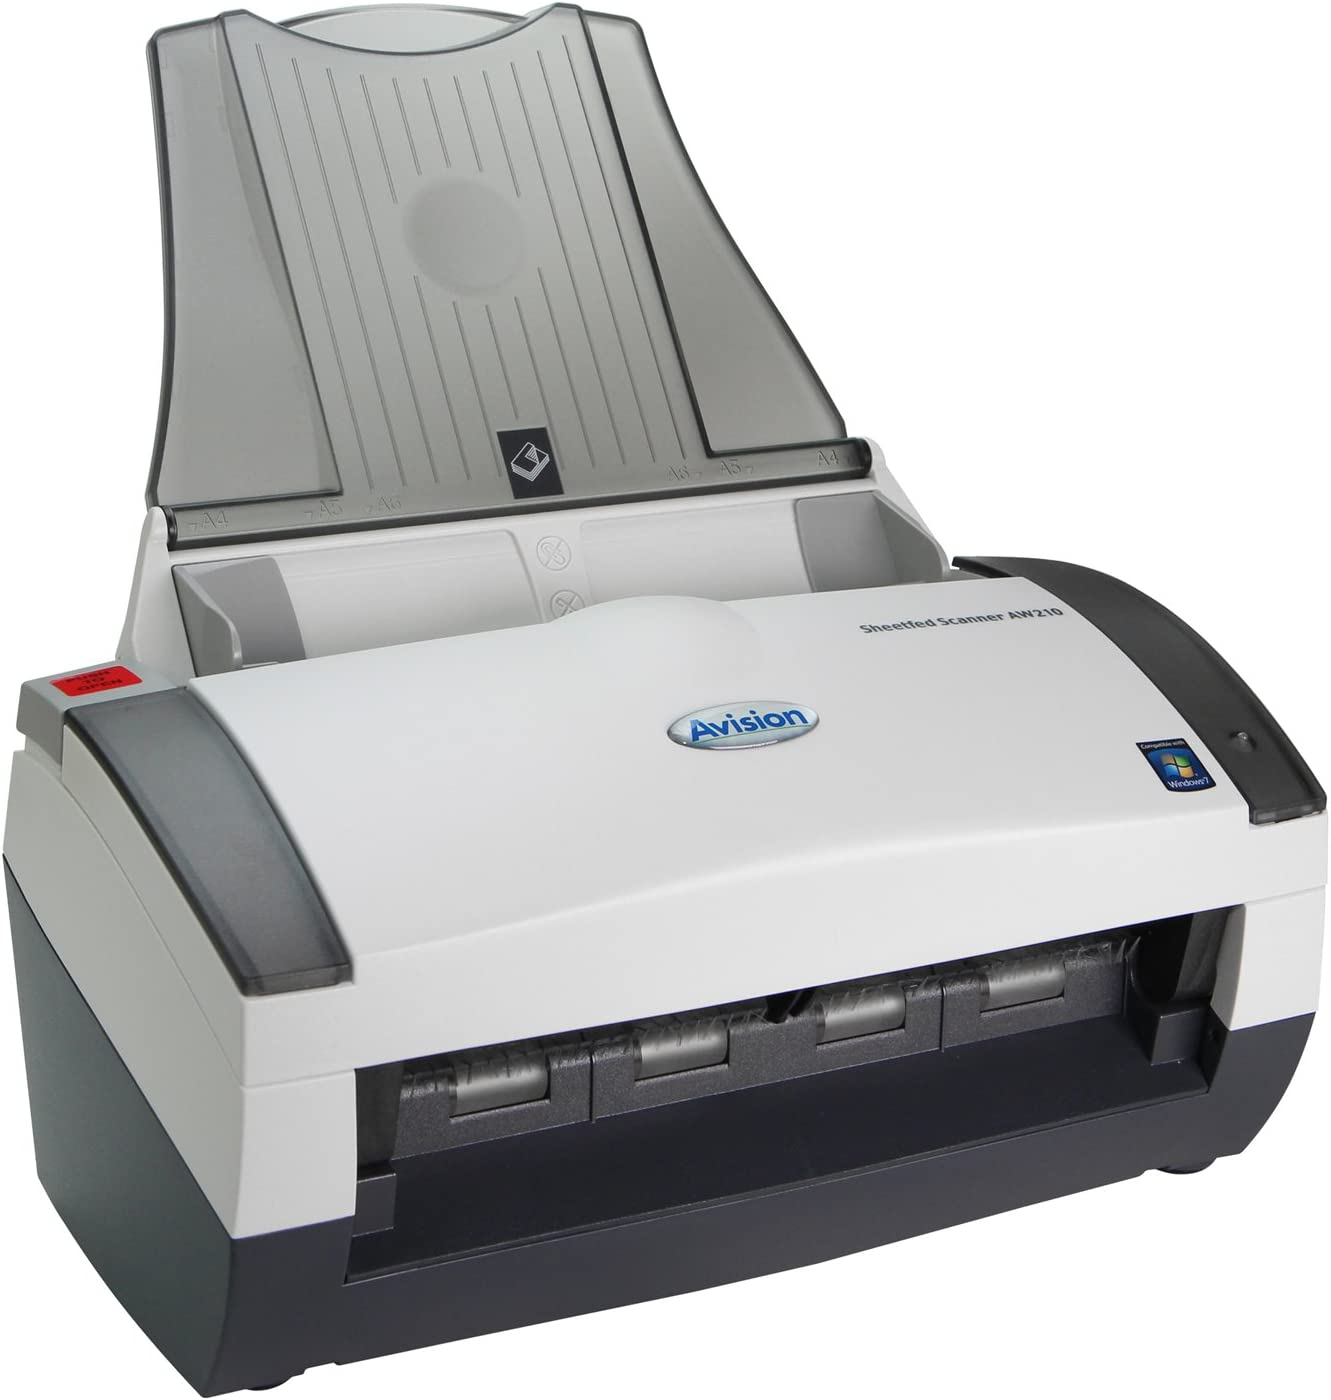 Avision AW210 is a simplex sheetfed Color Scanner with The Best Document and Paper handling Functions.